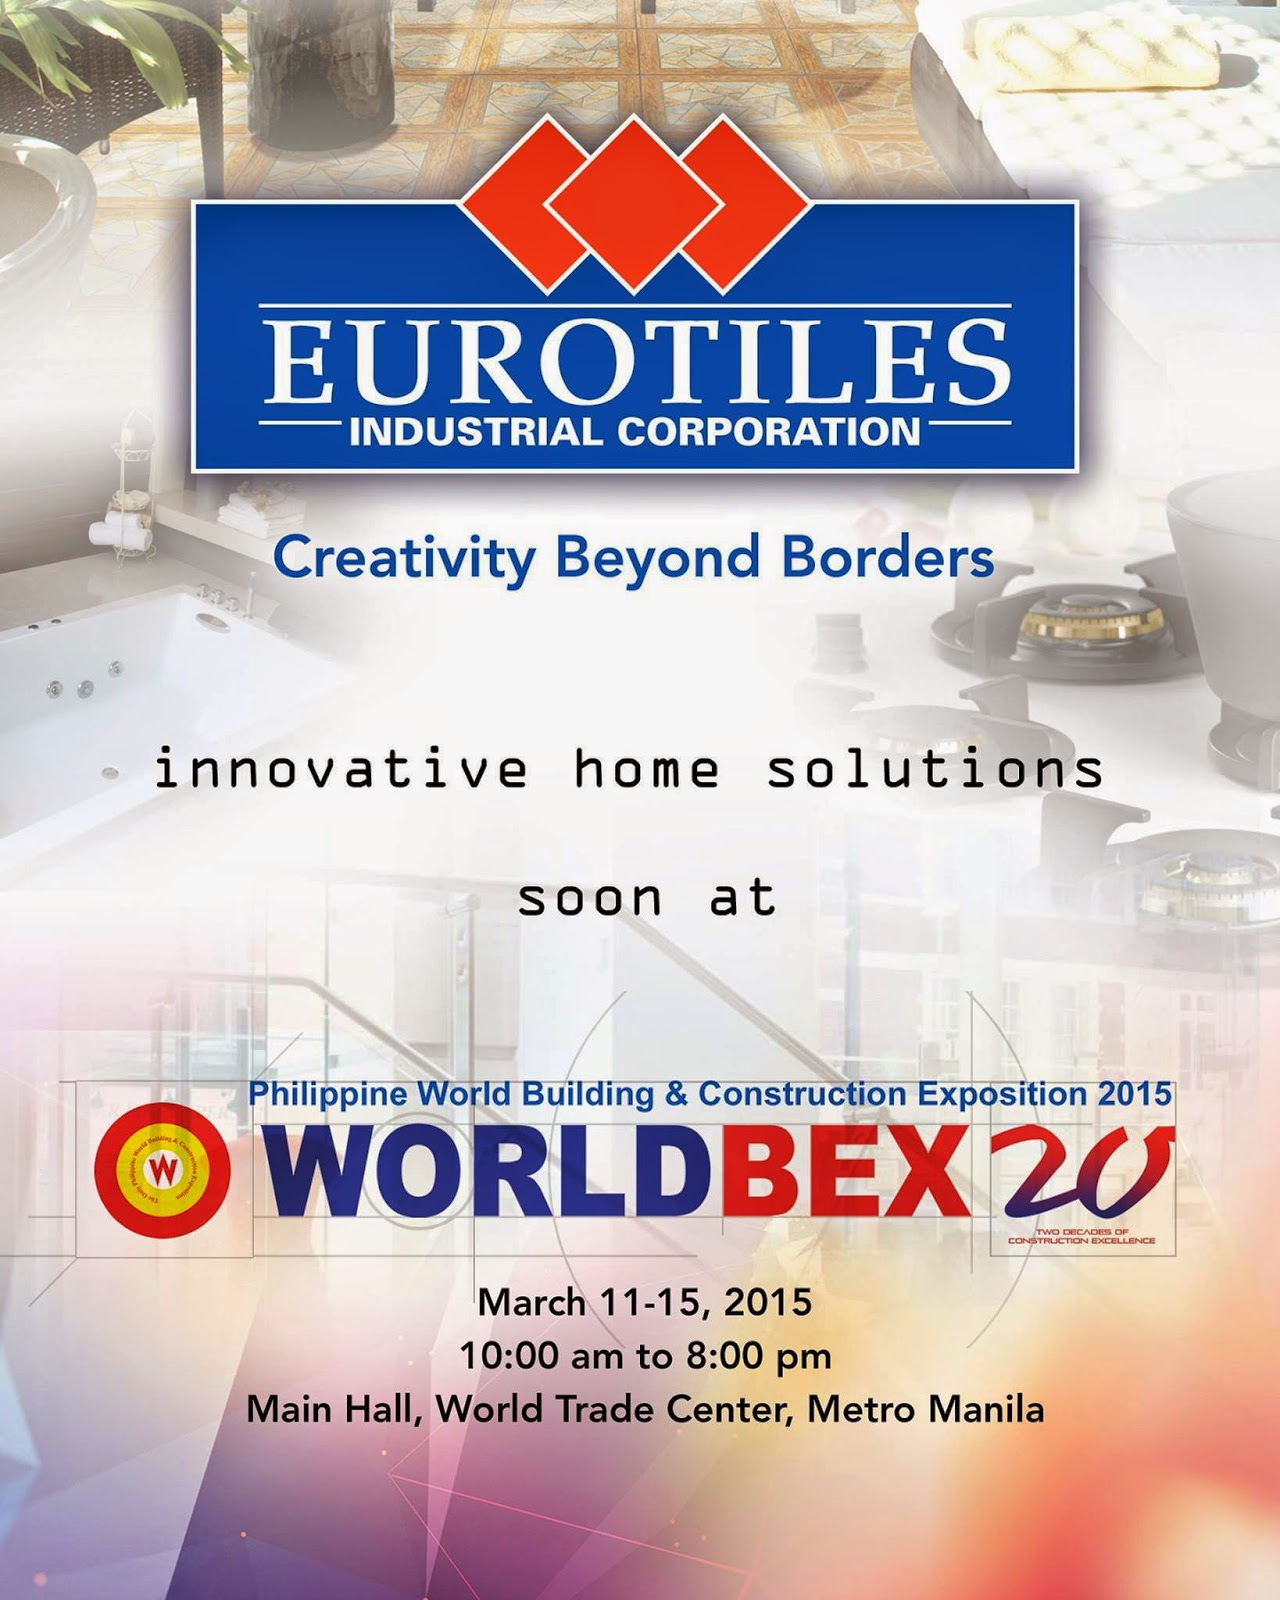 Eurotiles At Worldbex 2015 Eurotilesatworldbex2015